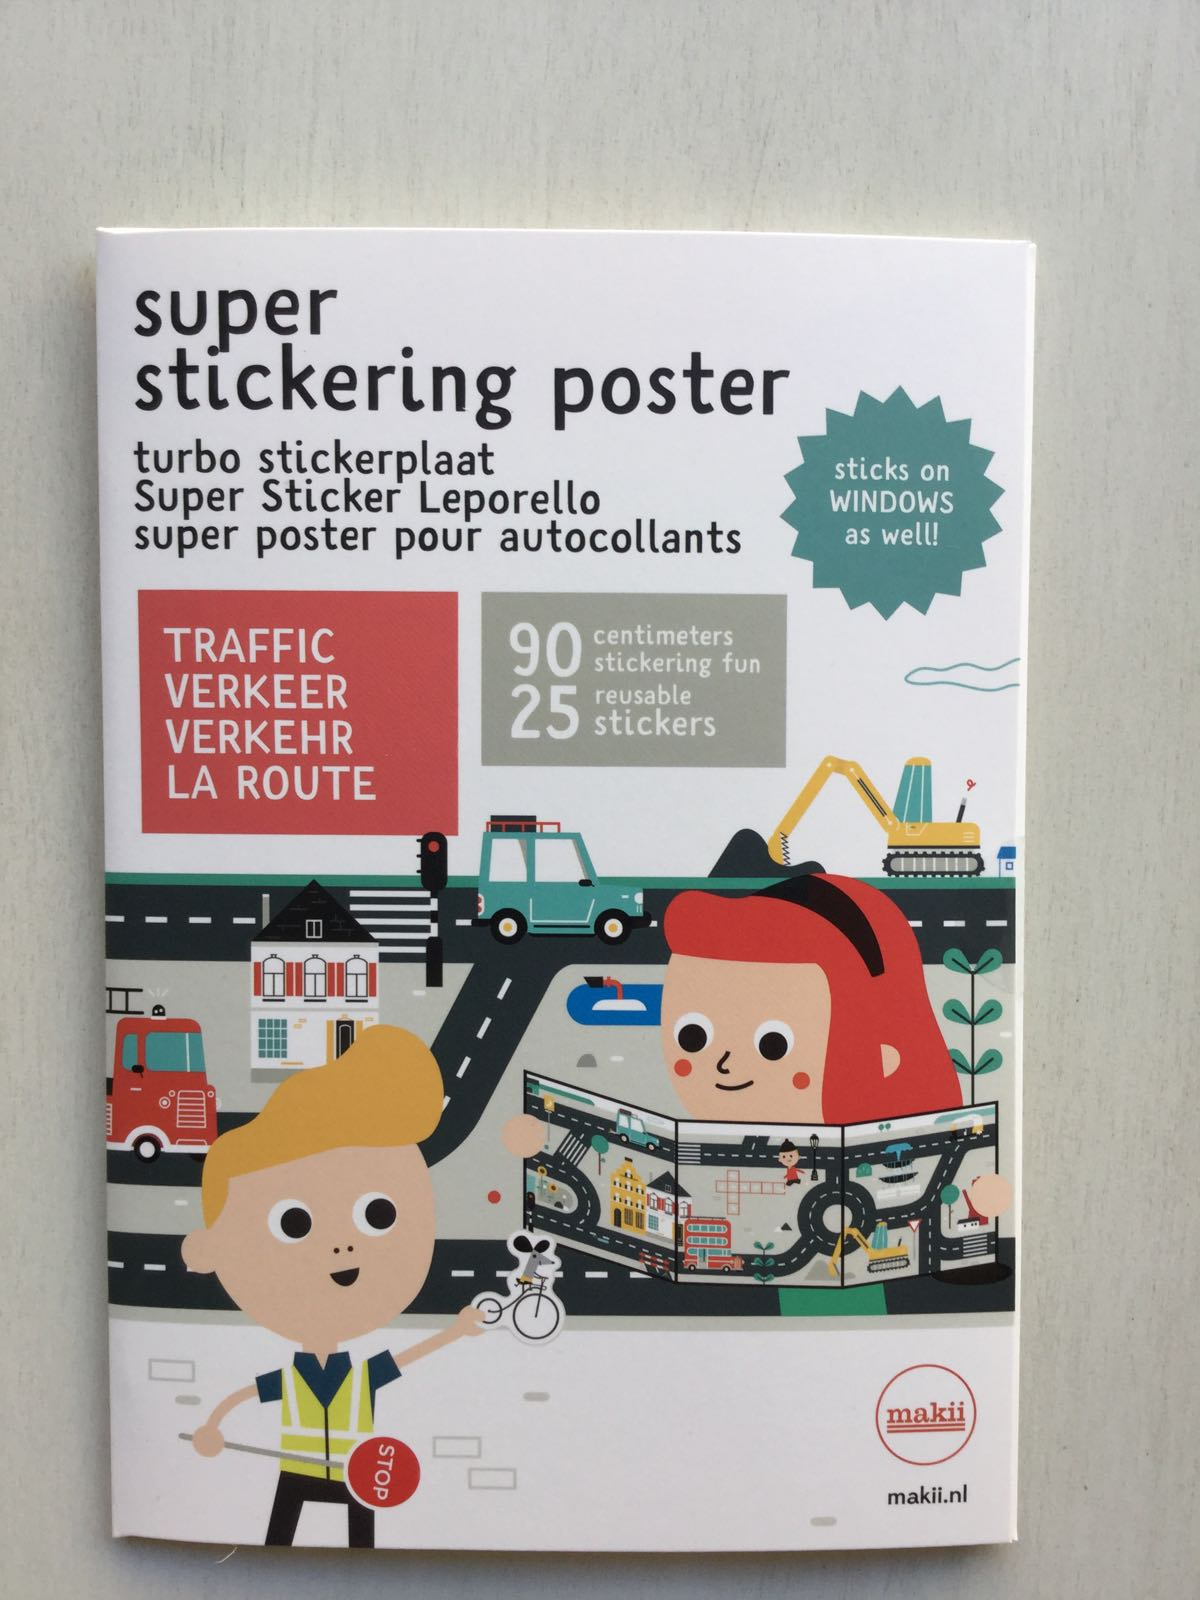 Makii - Super stickering poster - Traffic